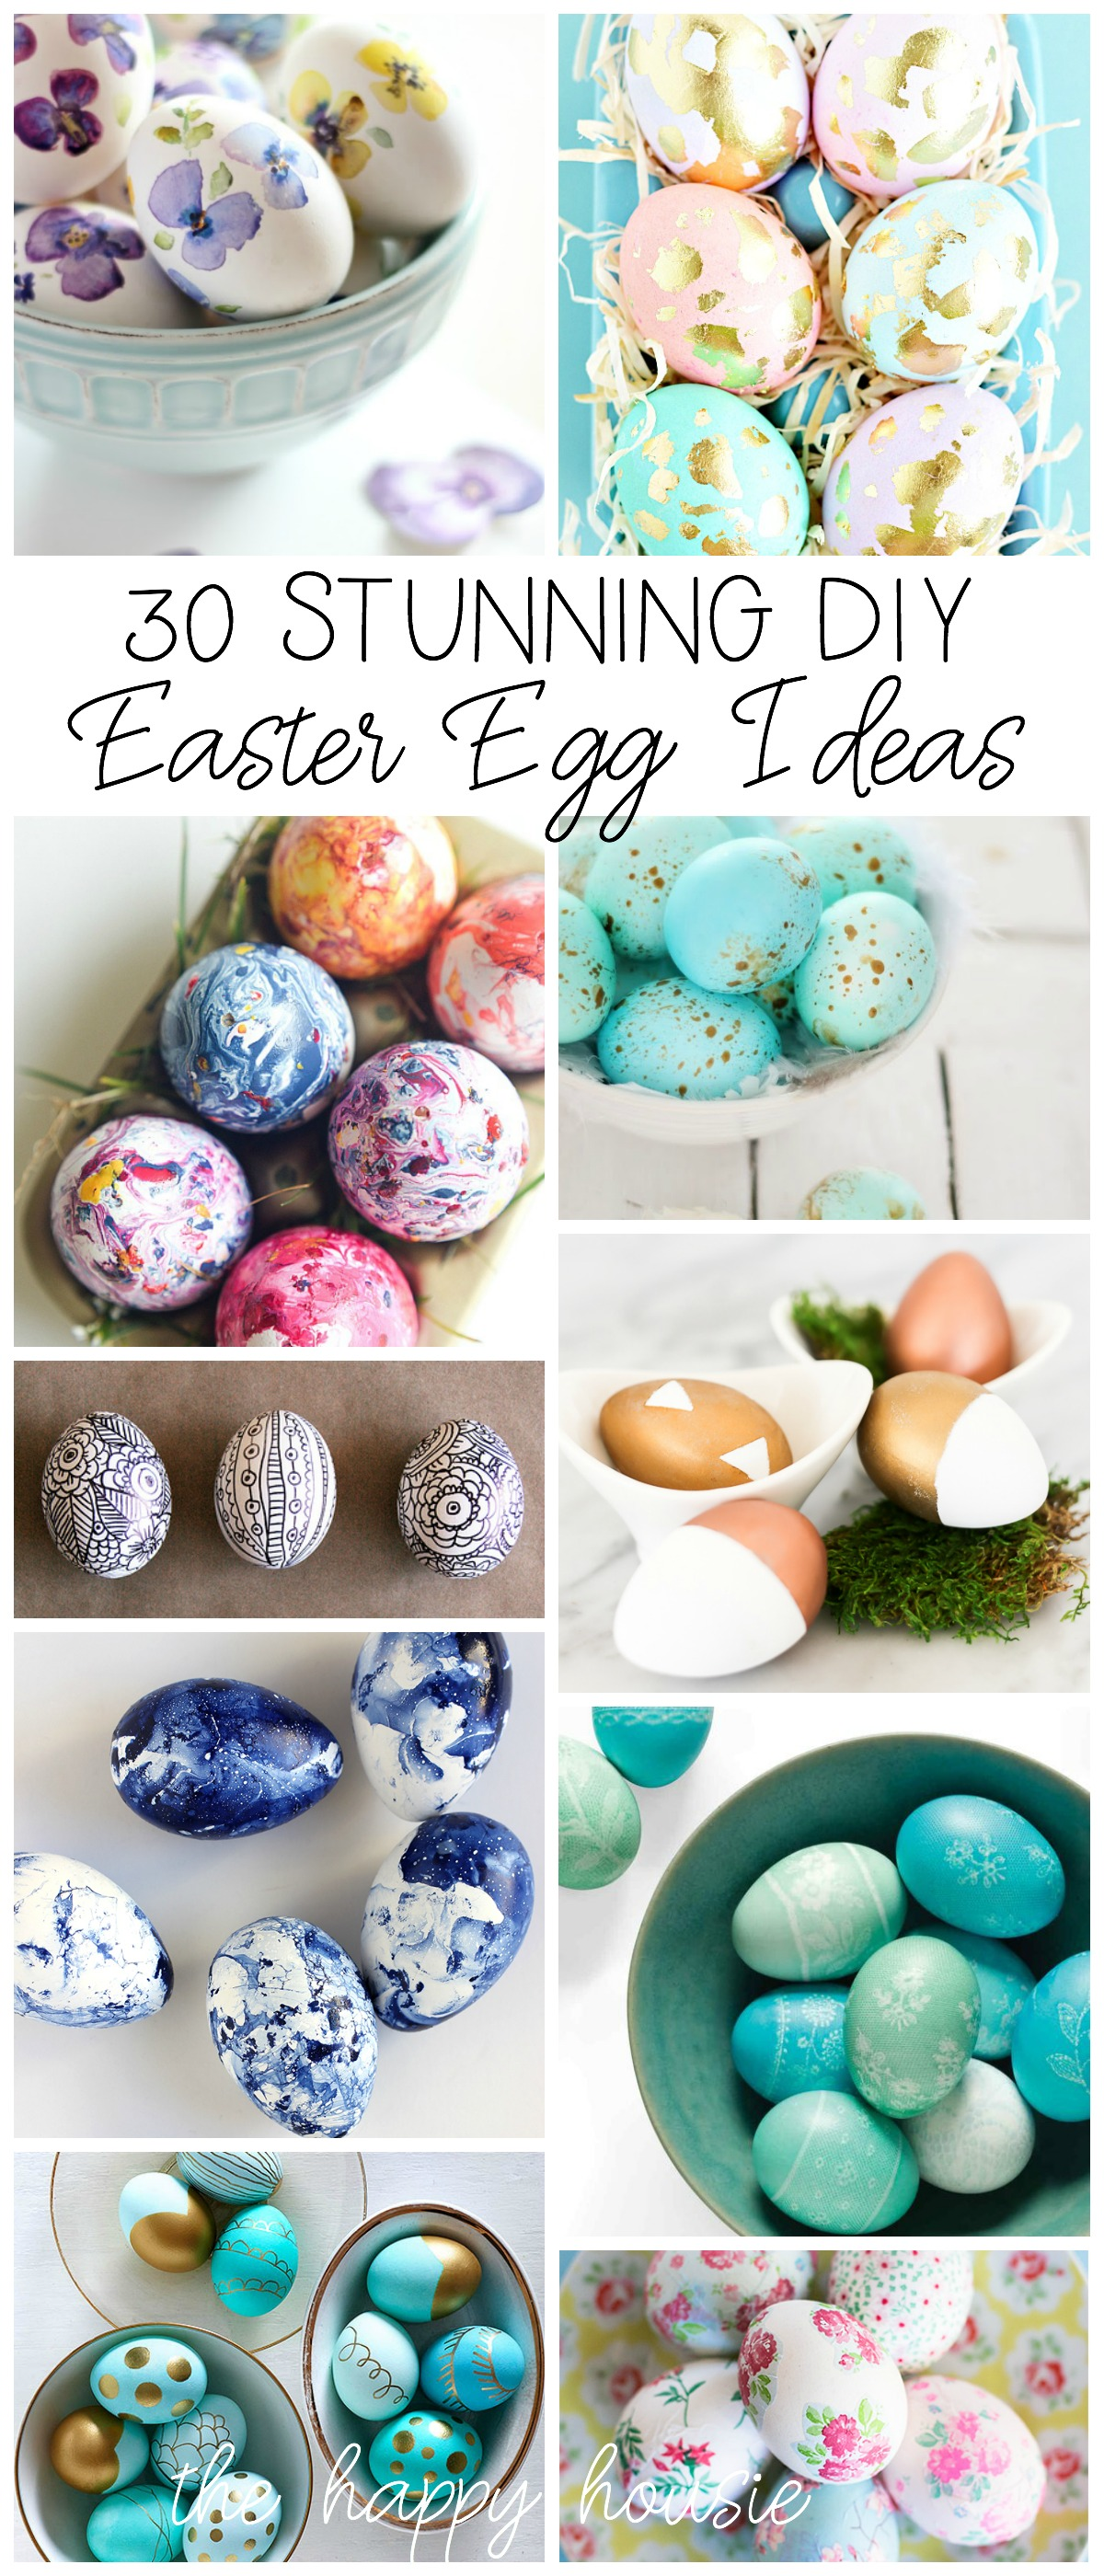 30 Stunning Diy Easter Egg Decorating Ideas The Happy Housie